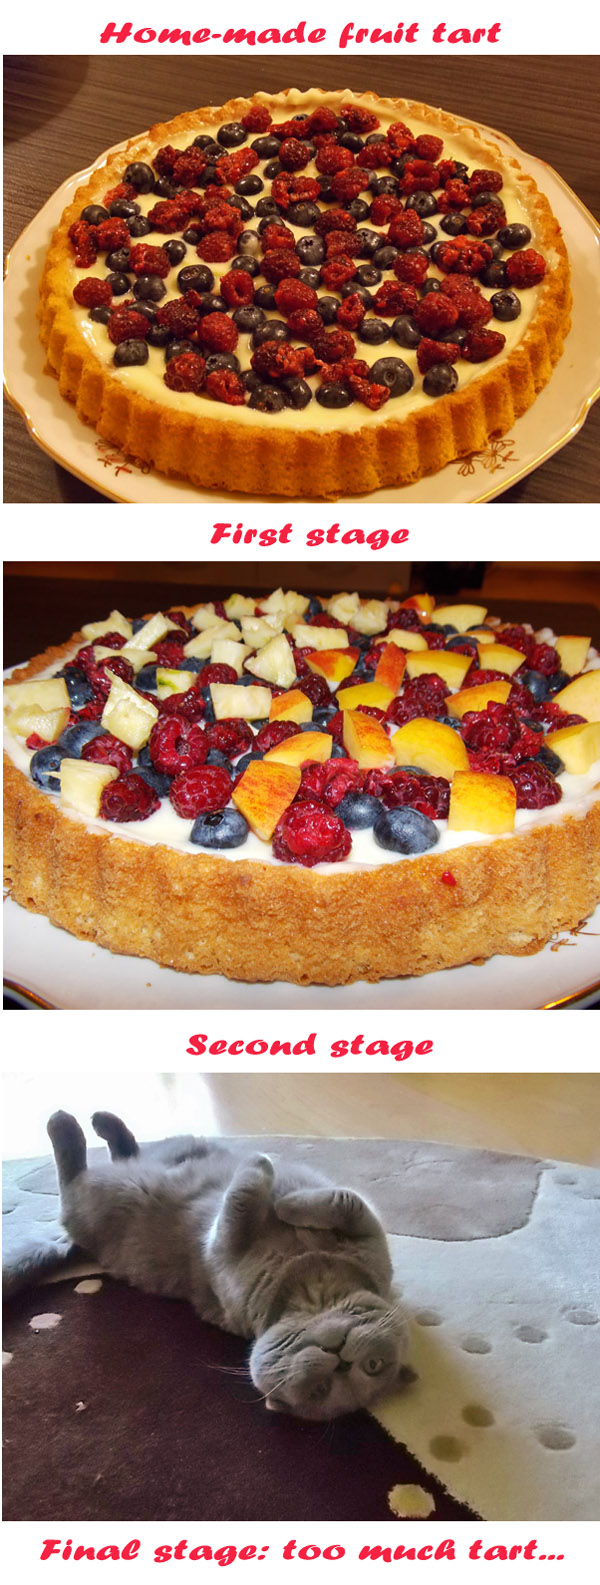 Charlie loves the home-made tart [photo collage]